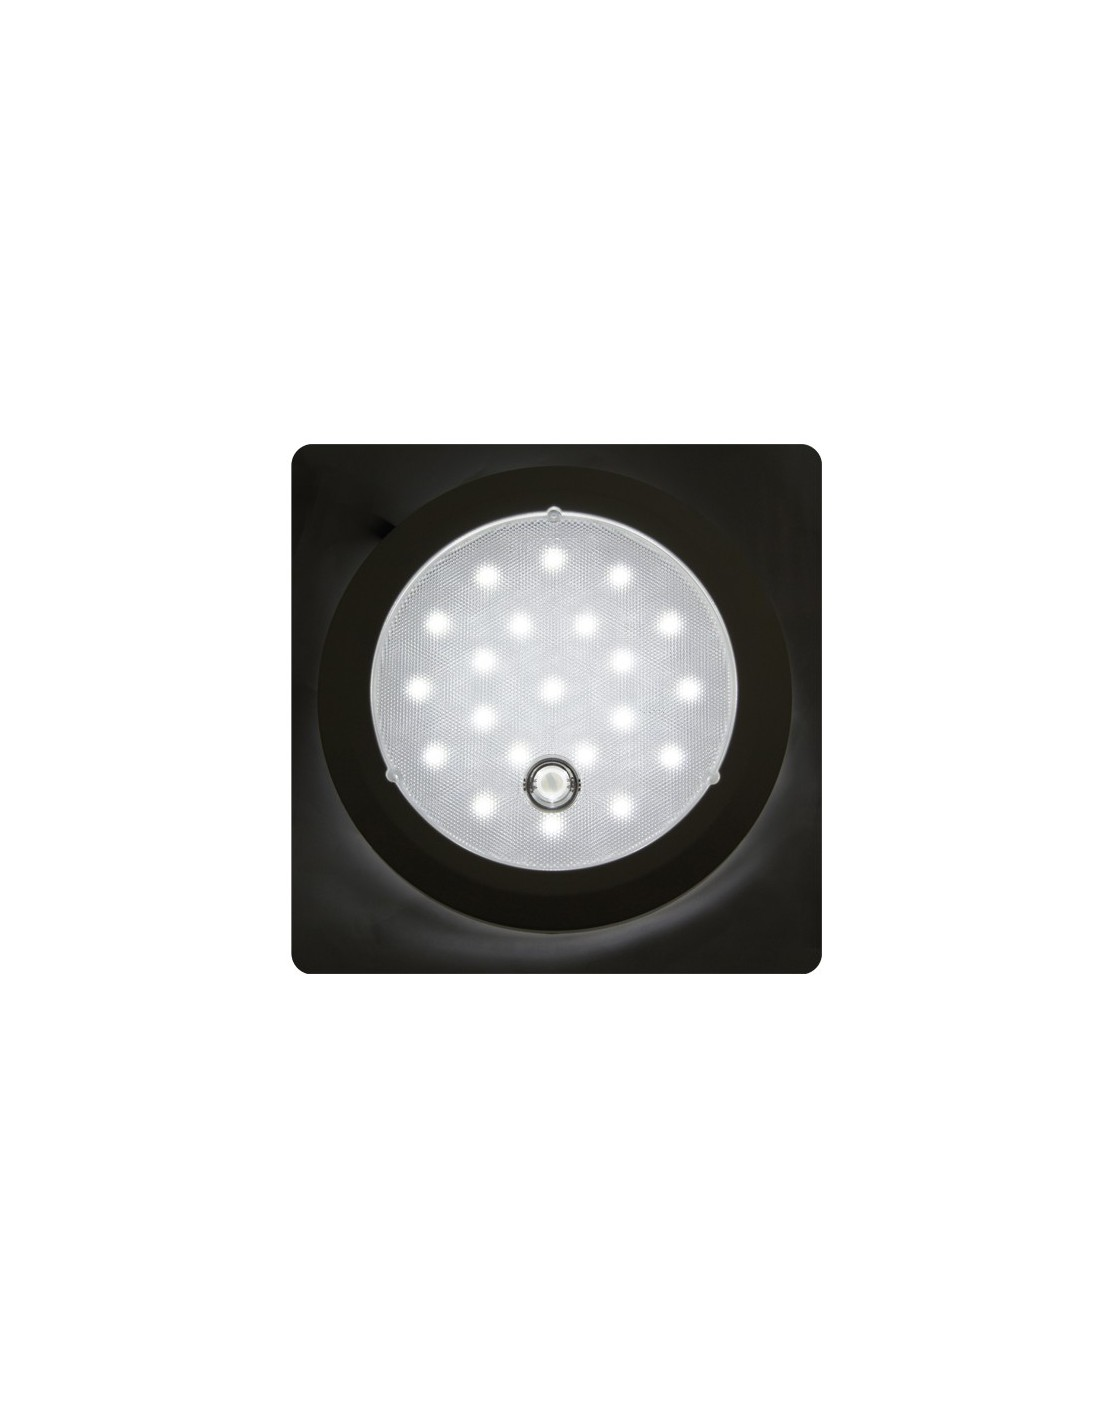 L mpara led interior redonda para autom viles for Lamparas led interior